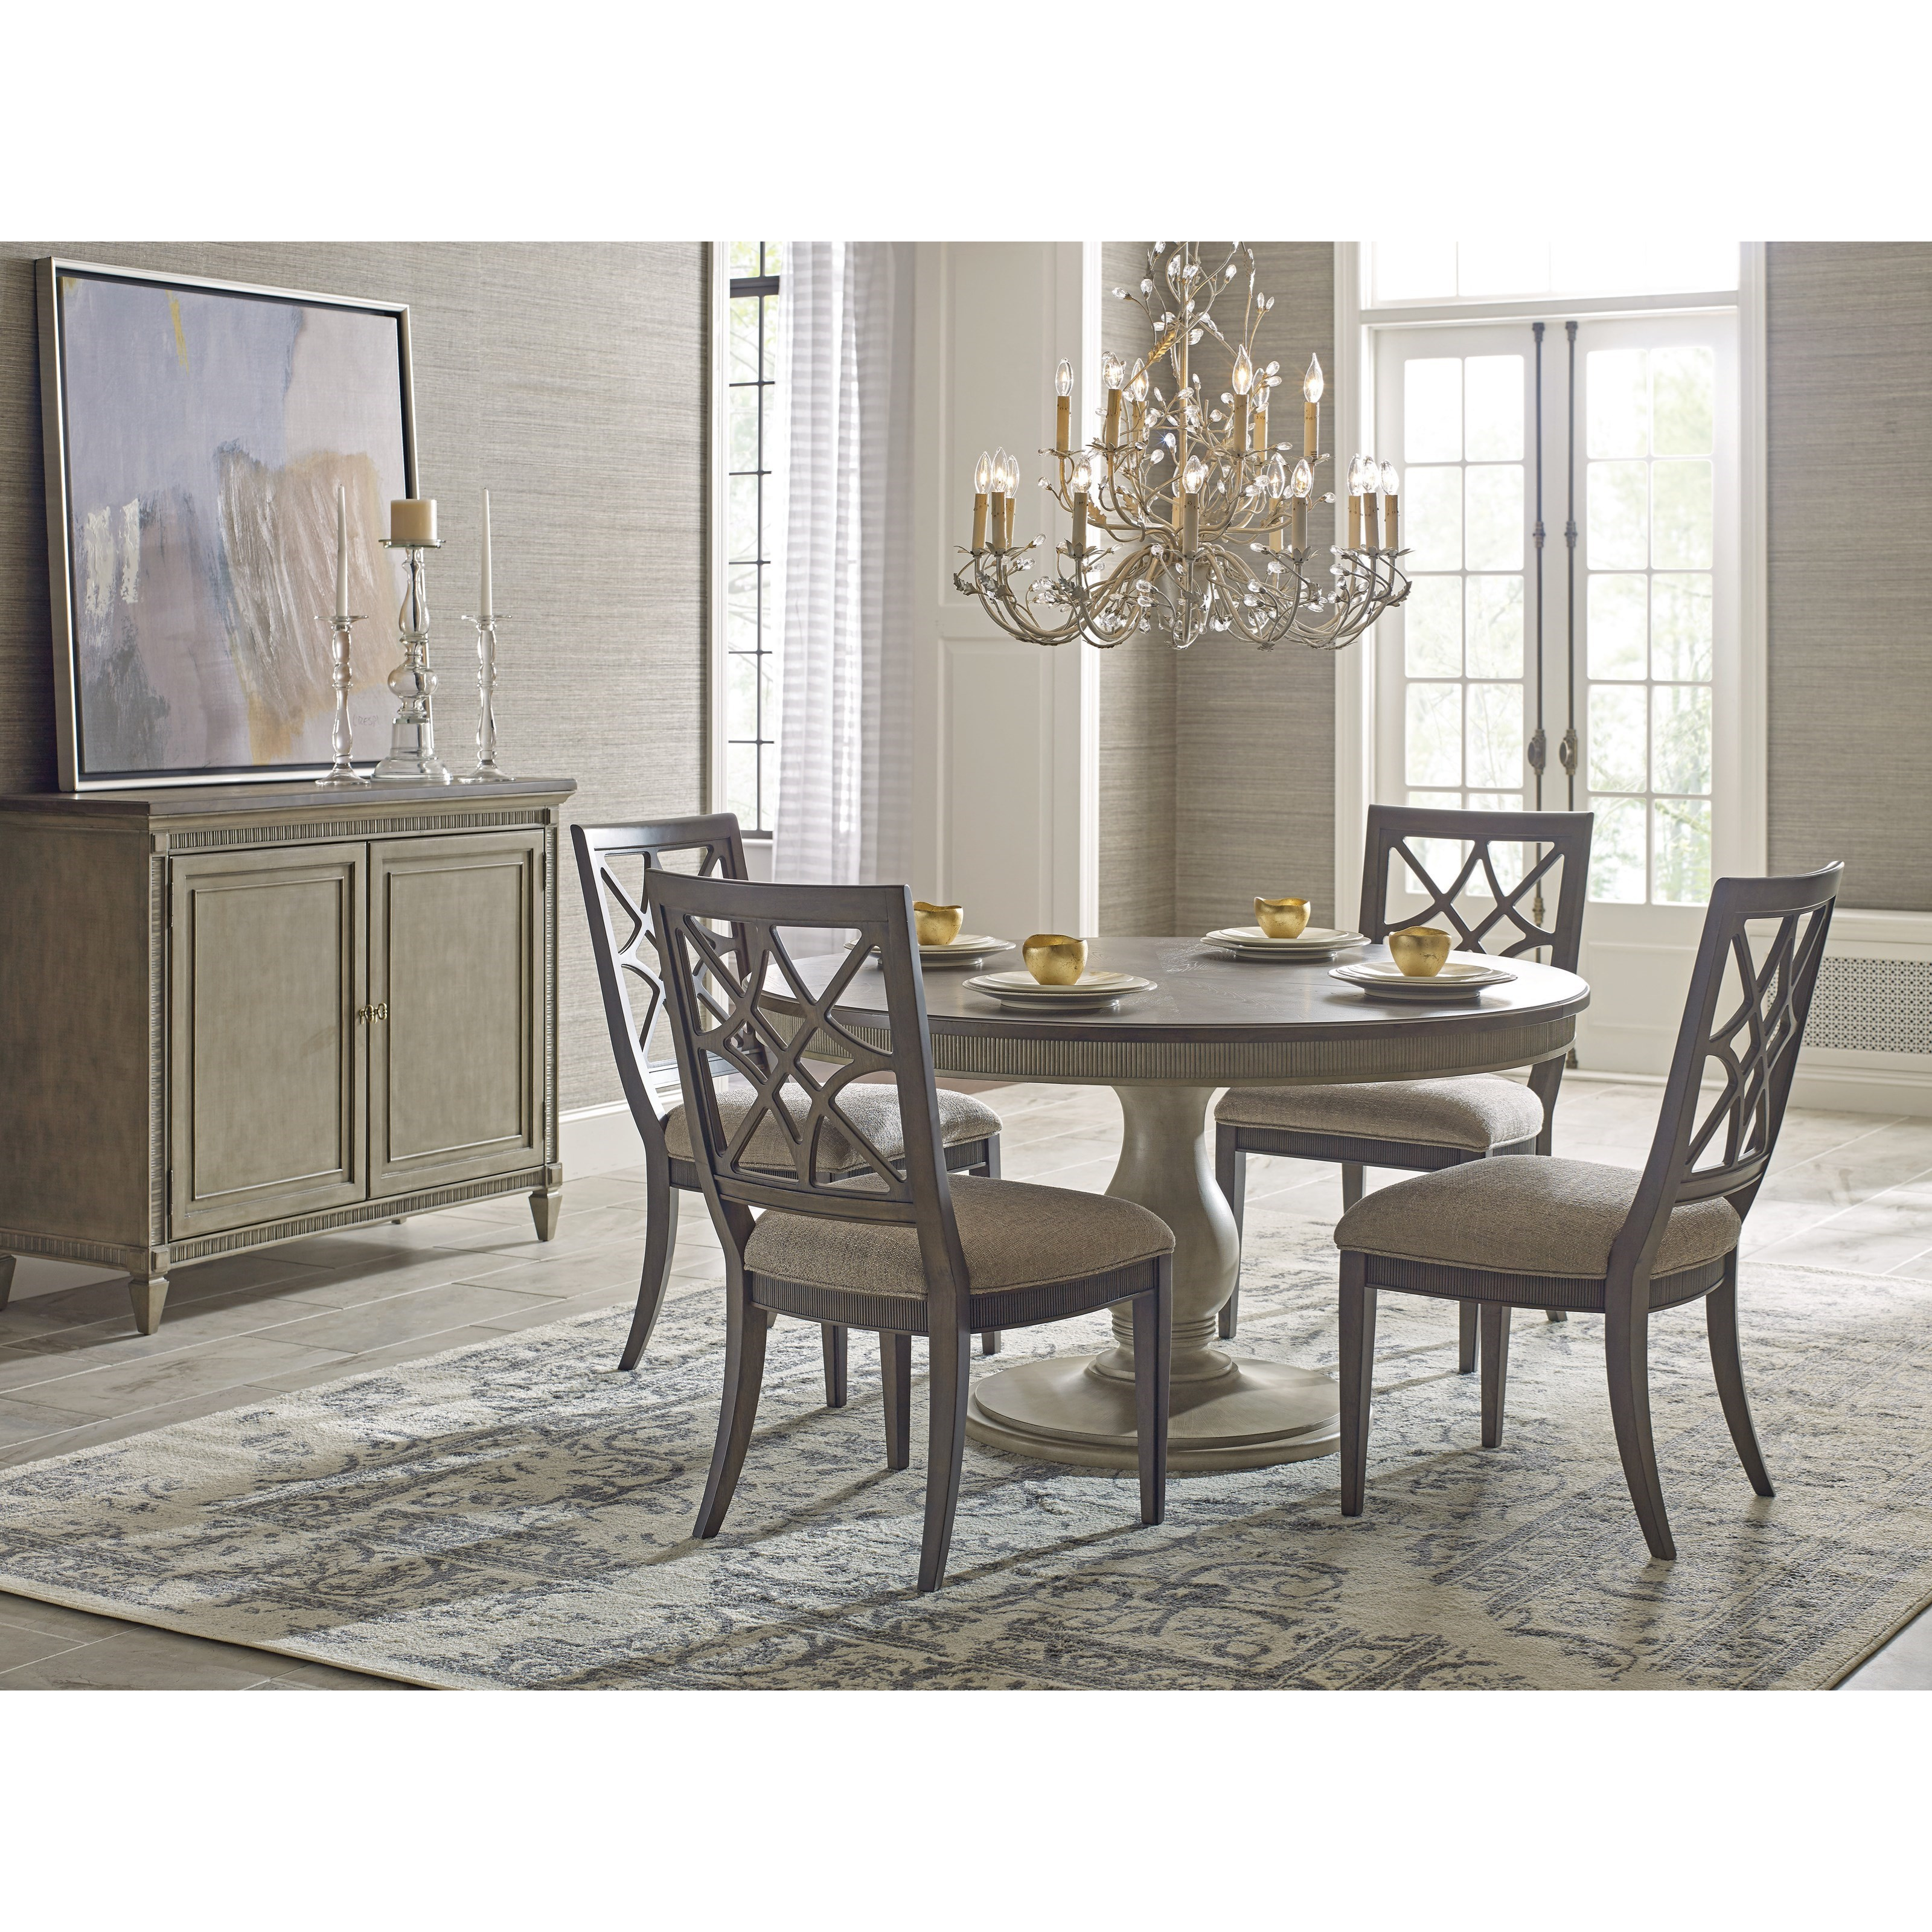 American Drew Savona Octavia Dining Table Stoney Creek